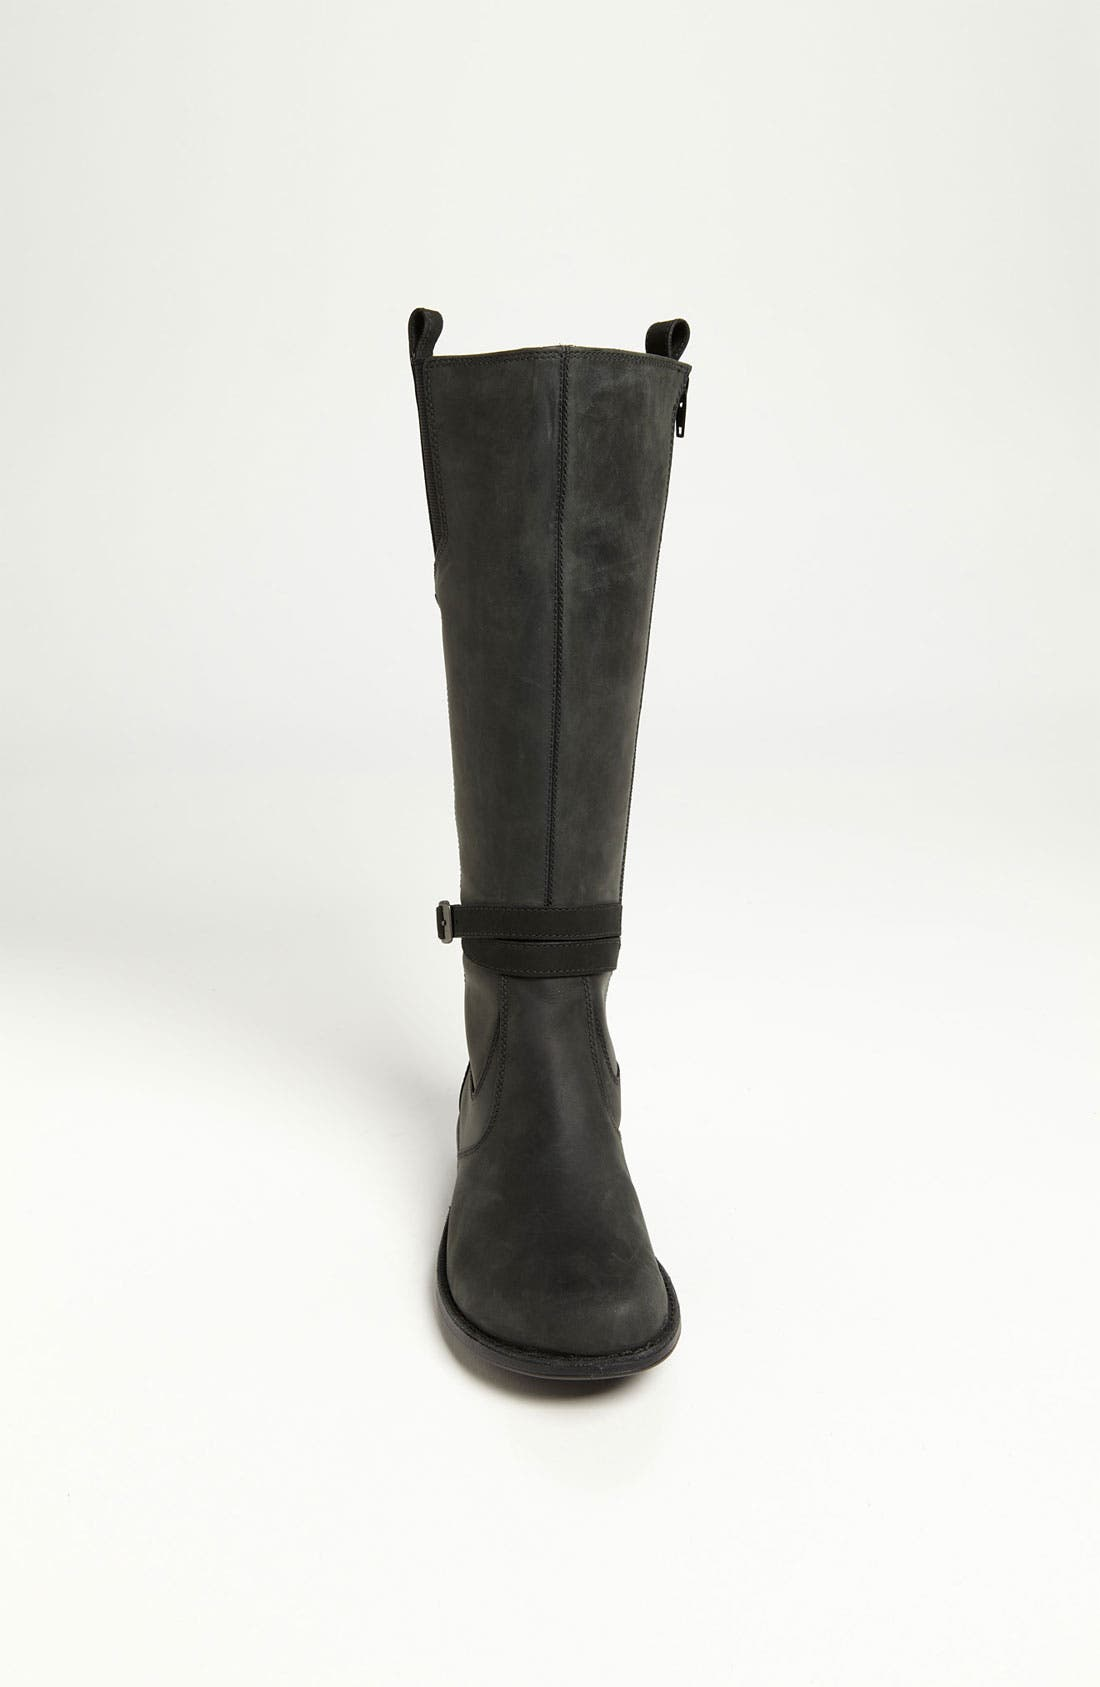 'Captiva Strap' Waterproof Boot,                             Alternate thumbnail 4, color,                             001